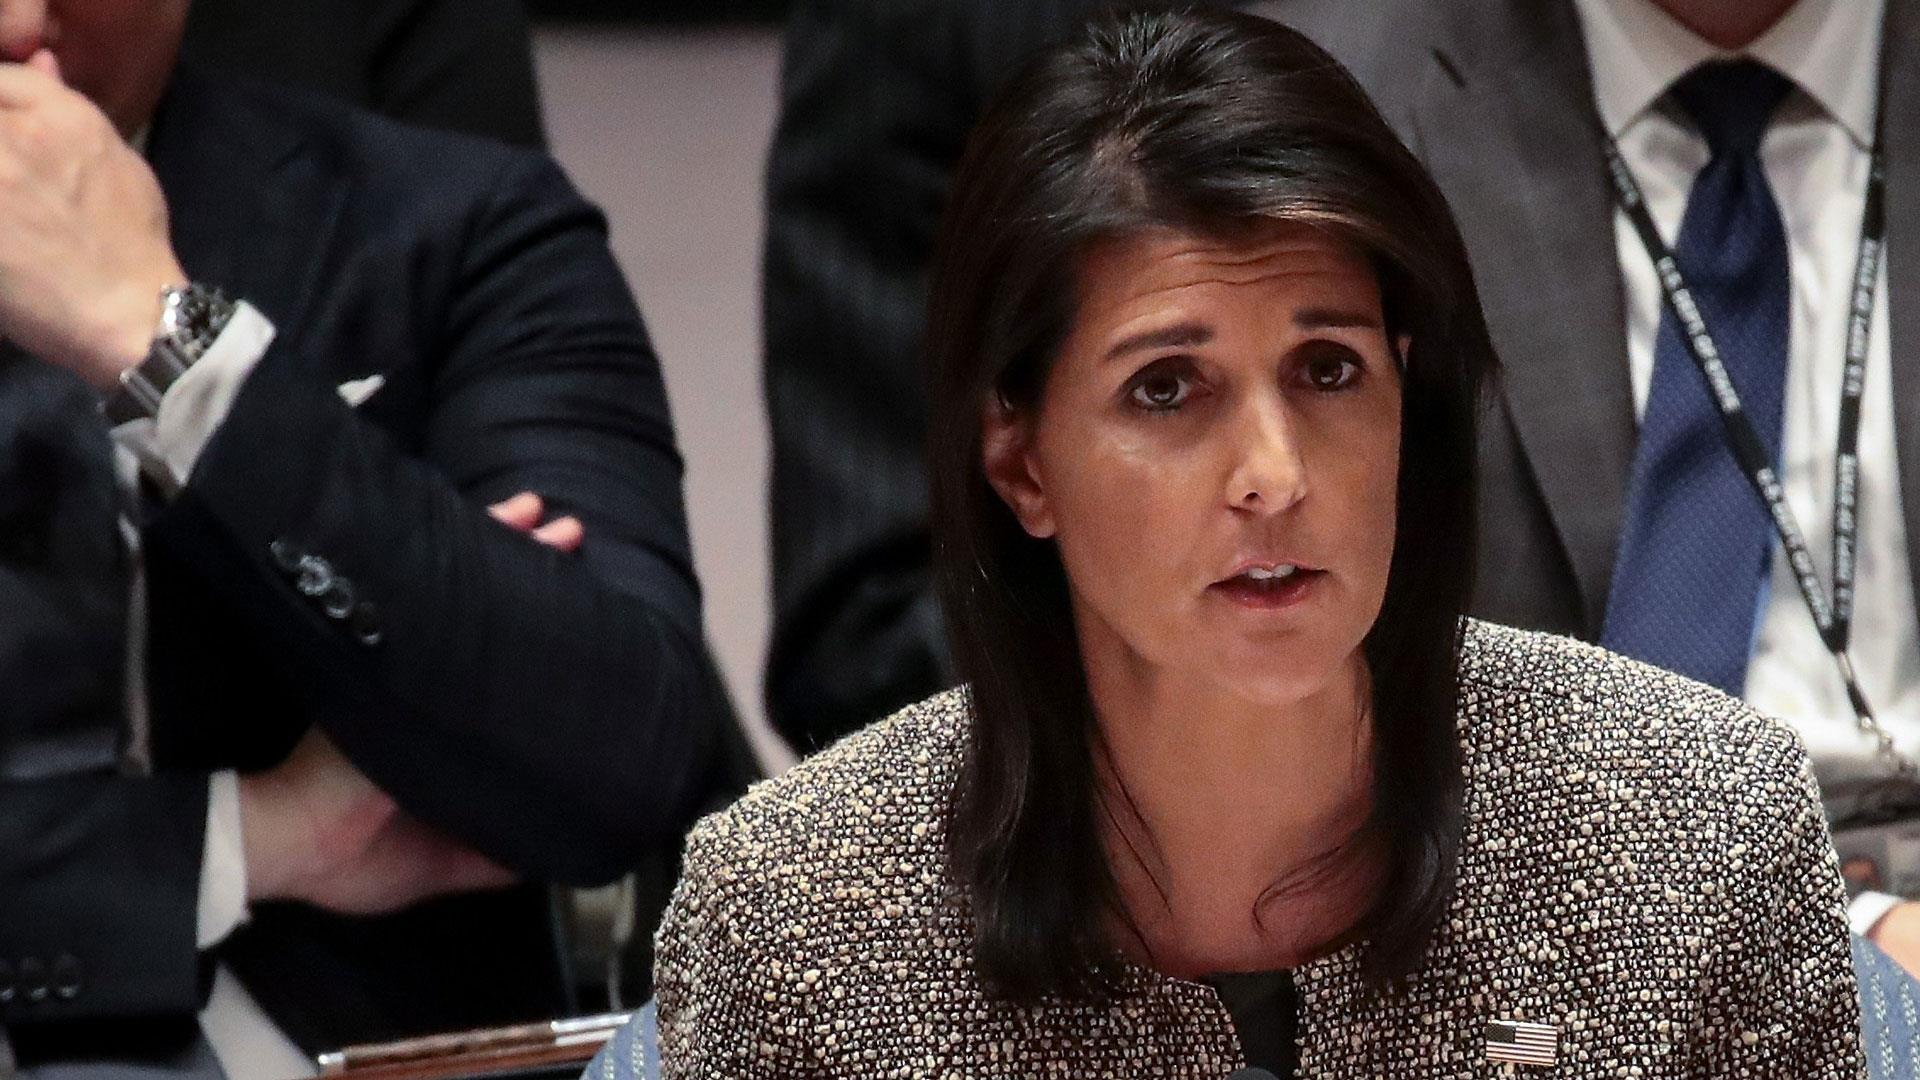 At UN, Ambassador Haley warns against war in which North Korean regime 'will be utterly destroyed'